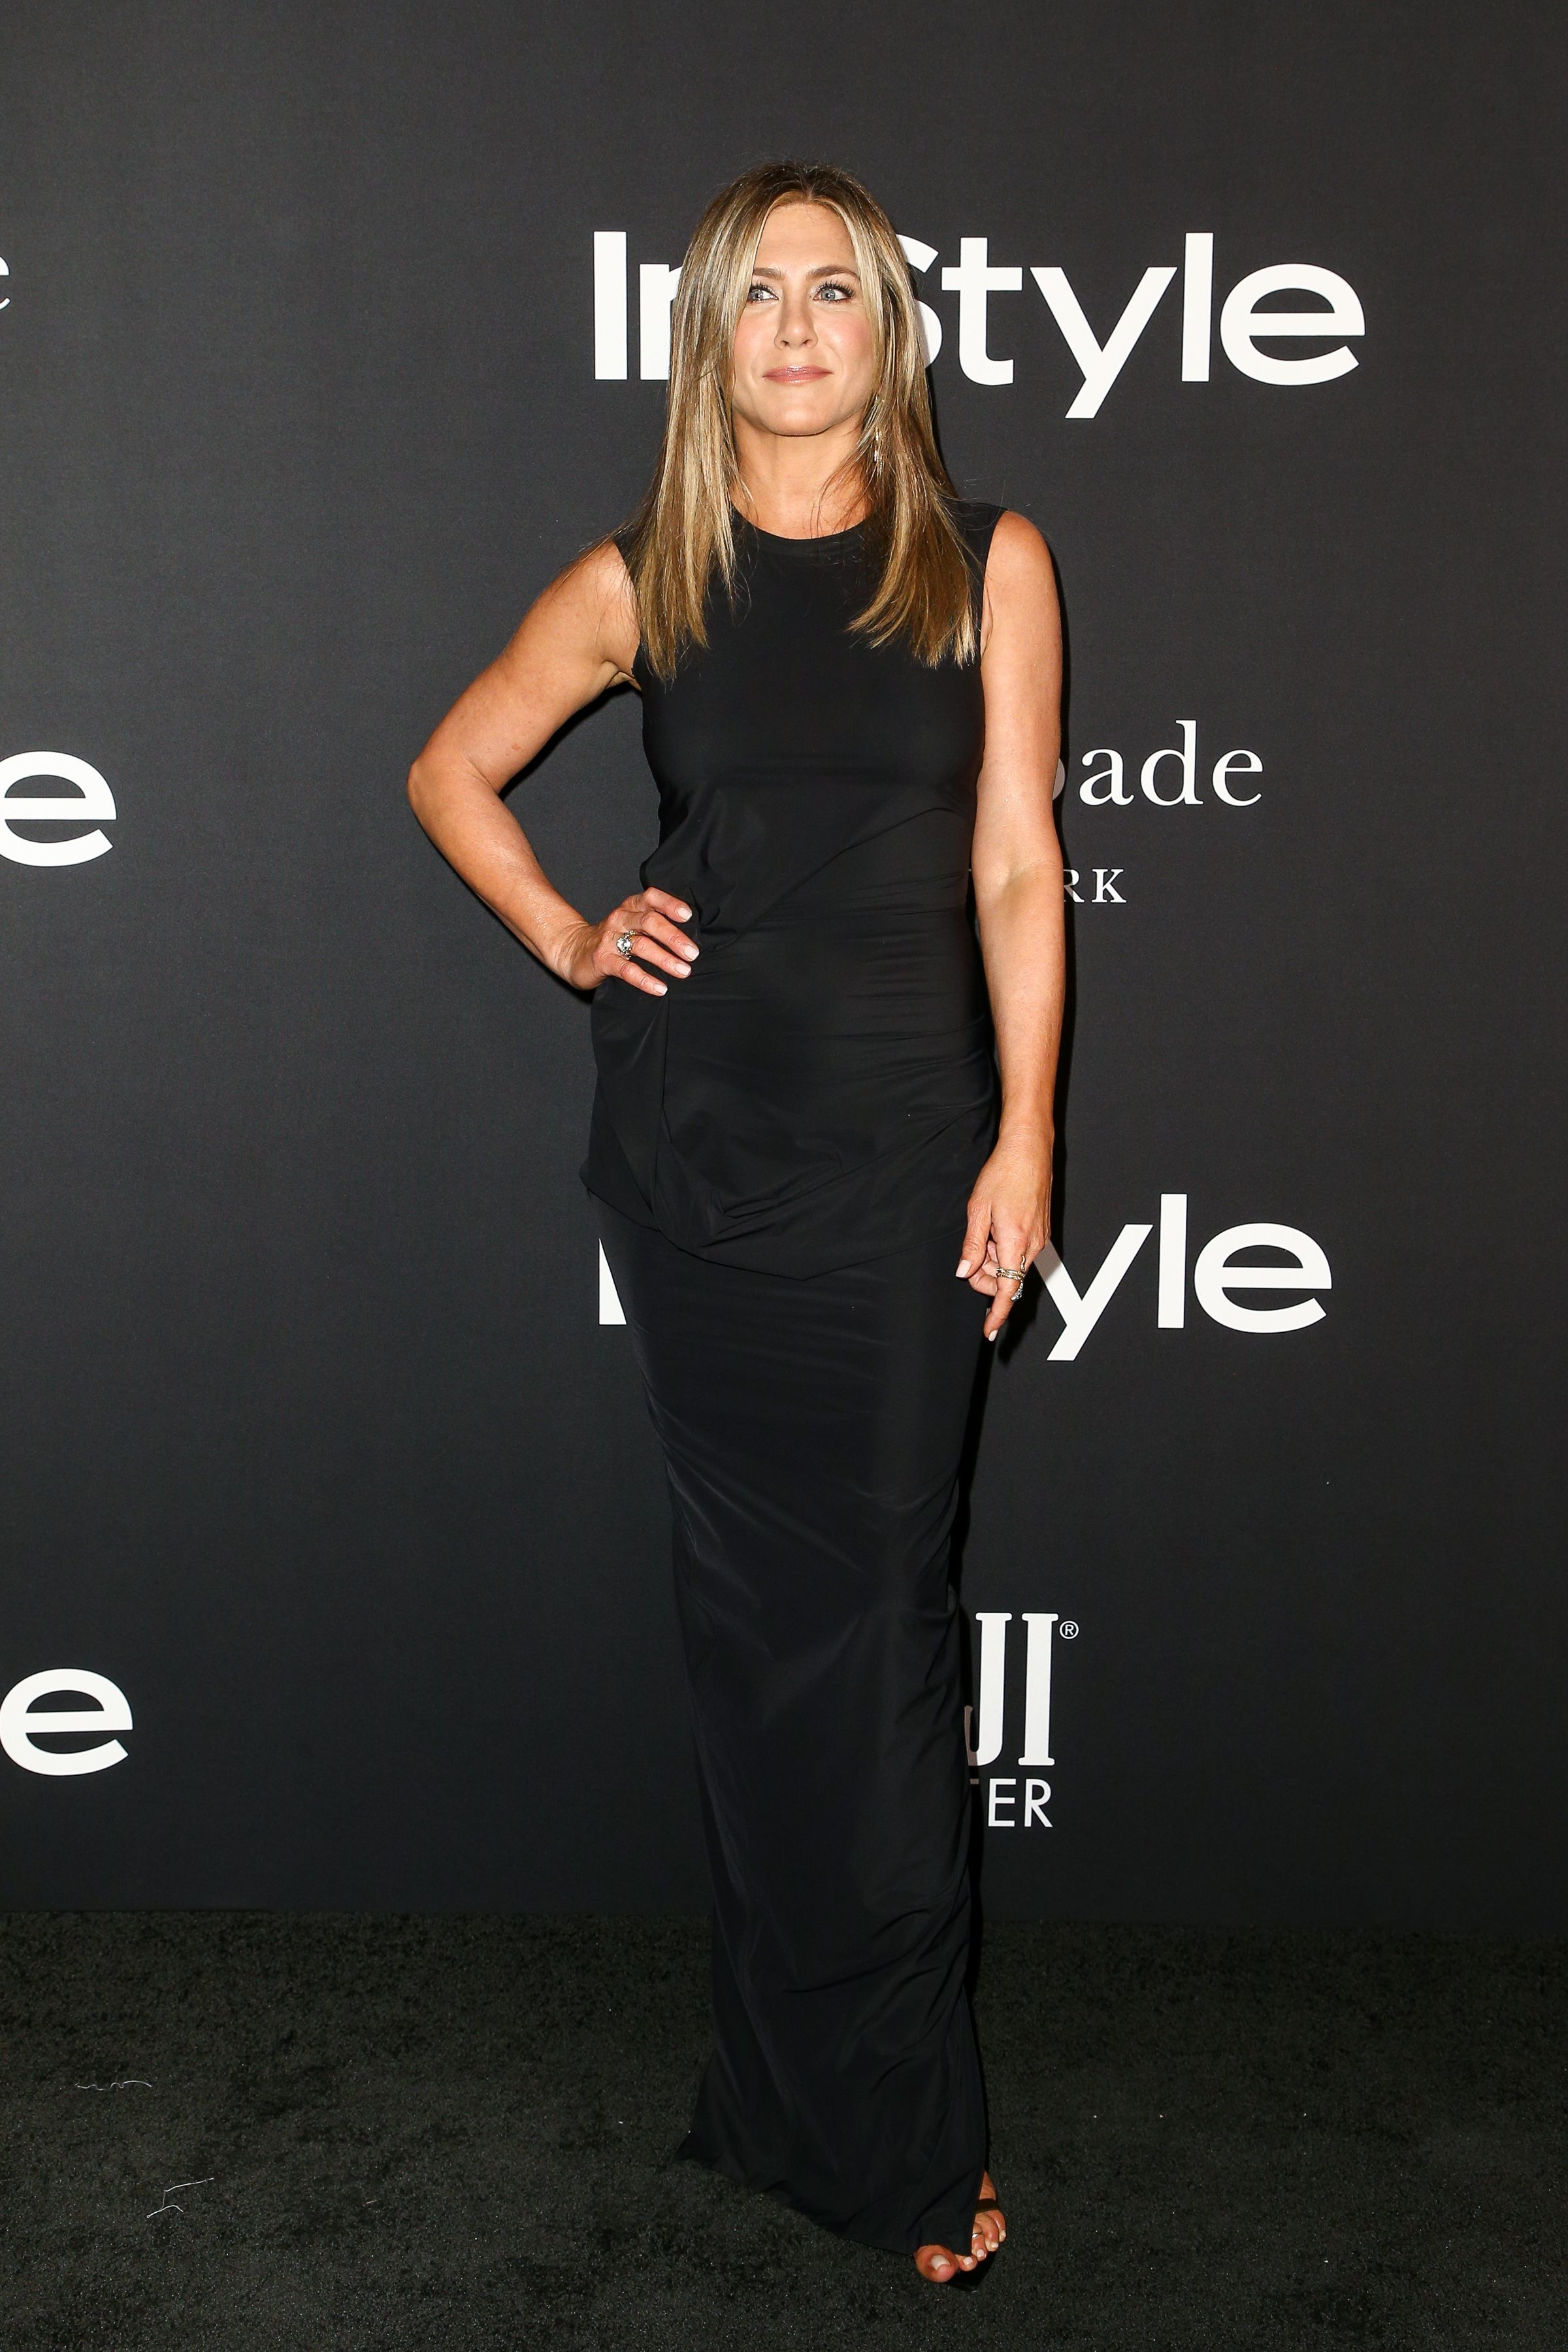 Jennifer Aniston attends the InStyle Awards in Los Angeles on Oct. 22, 2018.